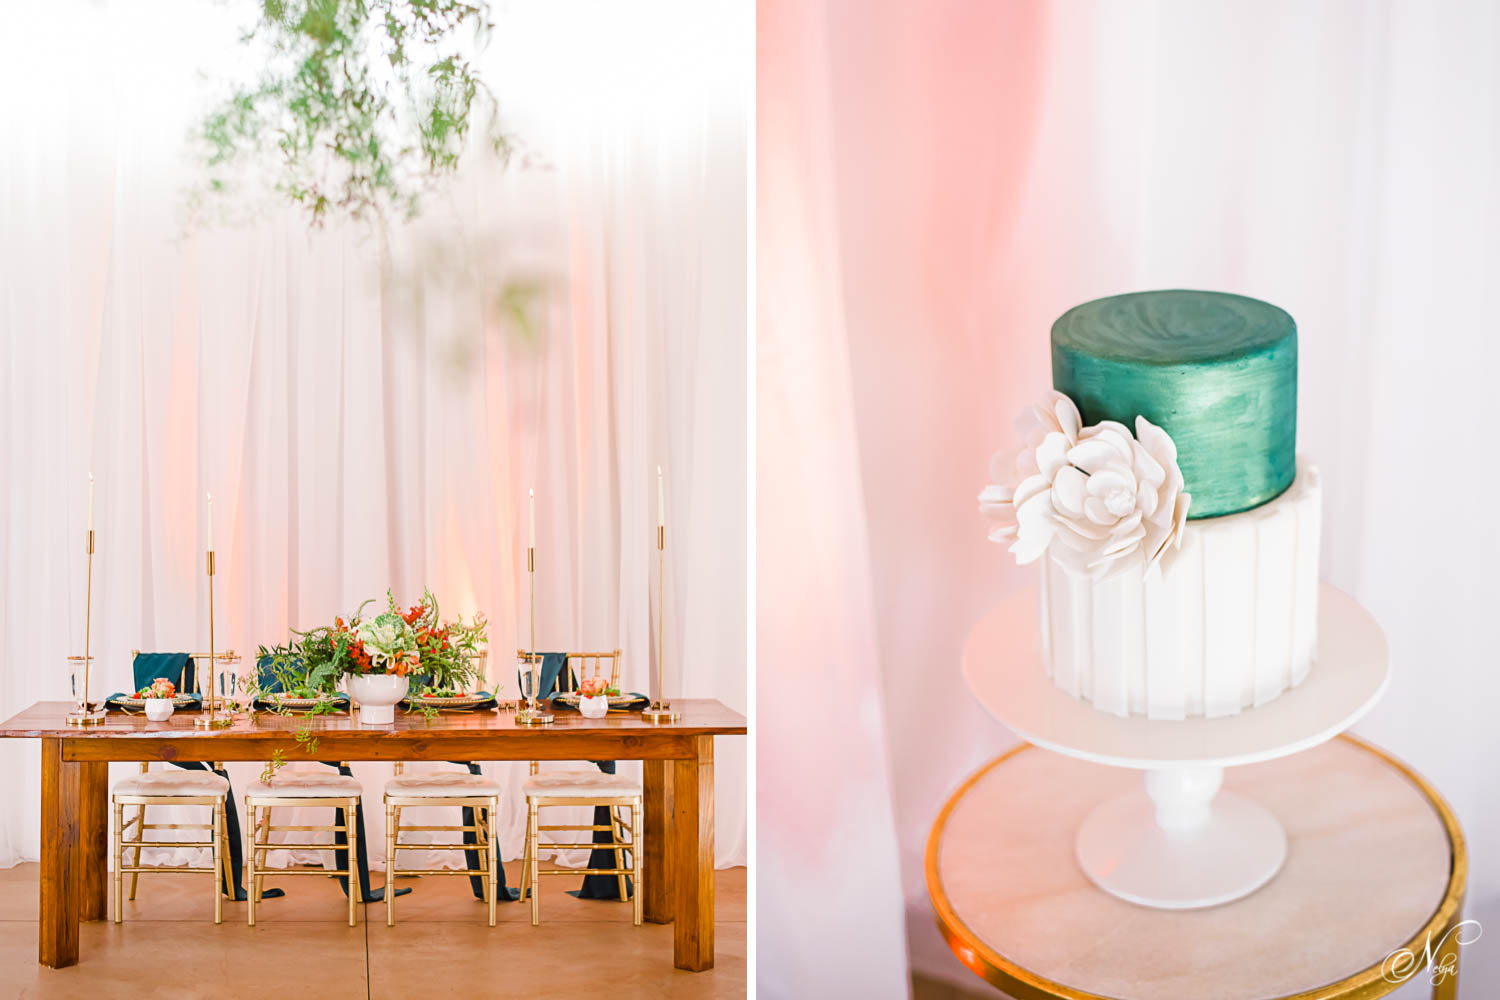 Styled wooden table with placesettings in gold and center piece in peach and greens. And Green and white Wedding cake